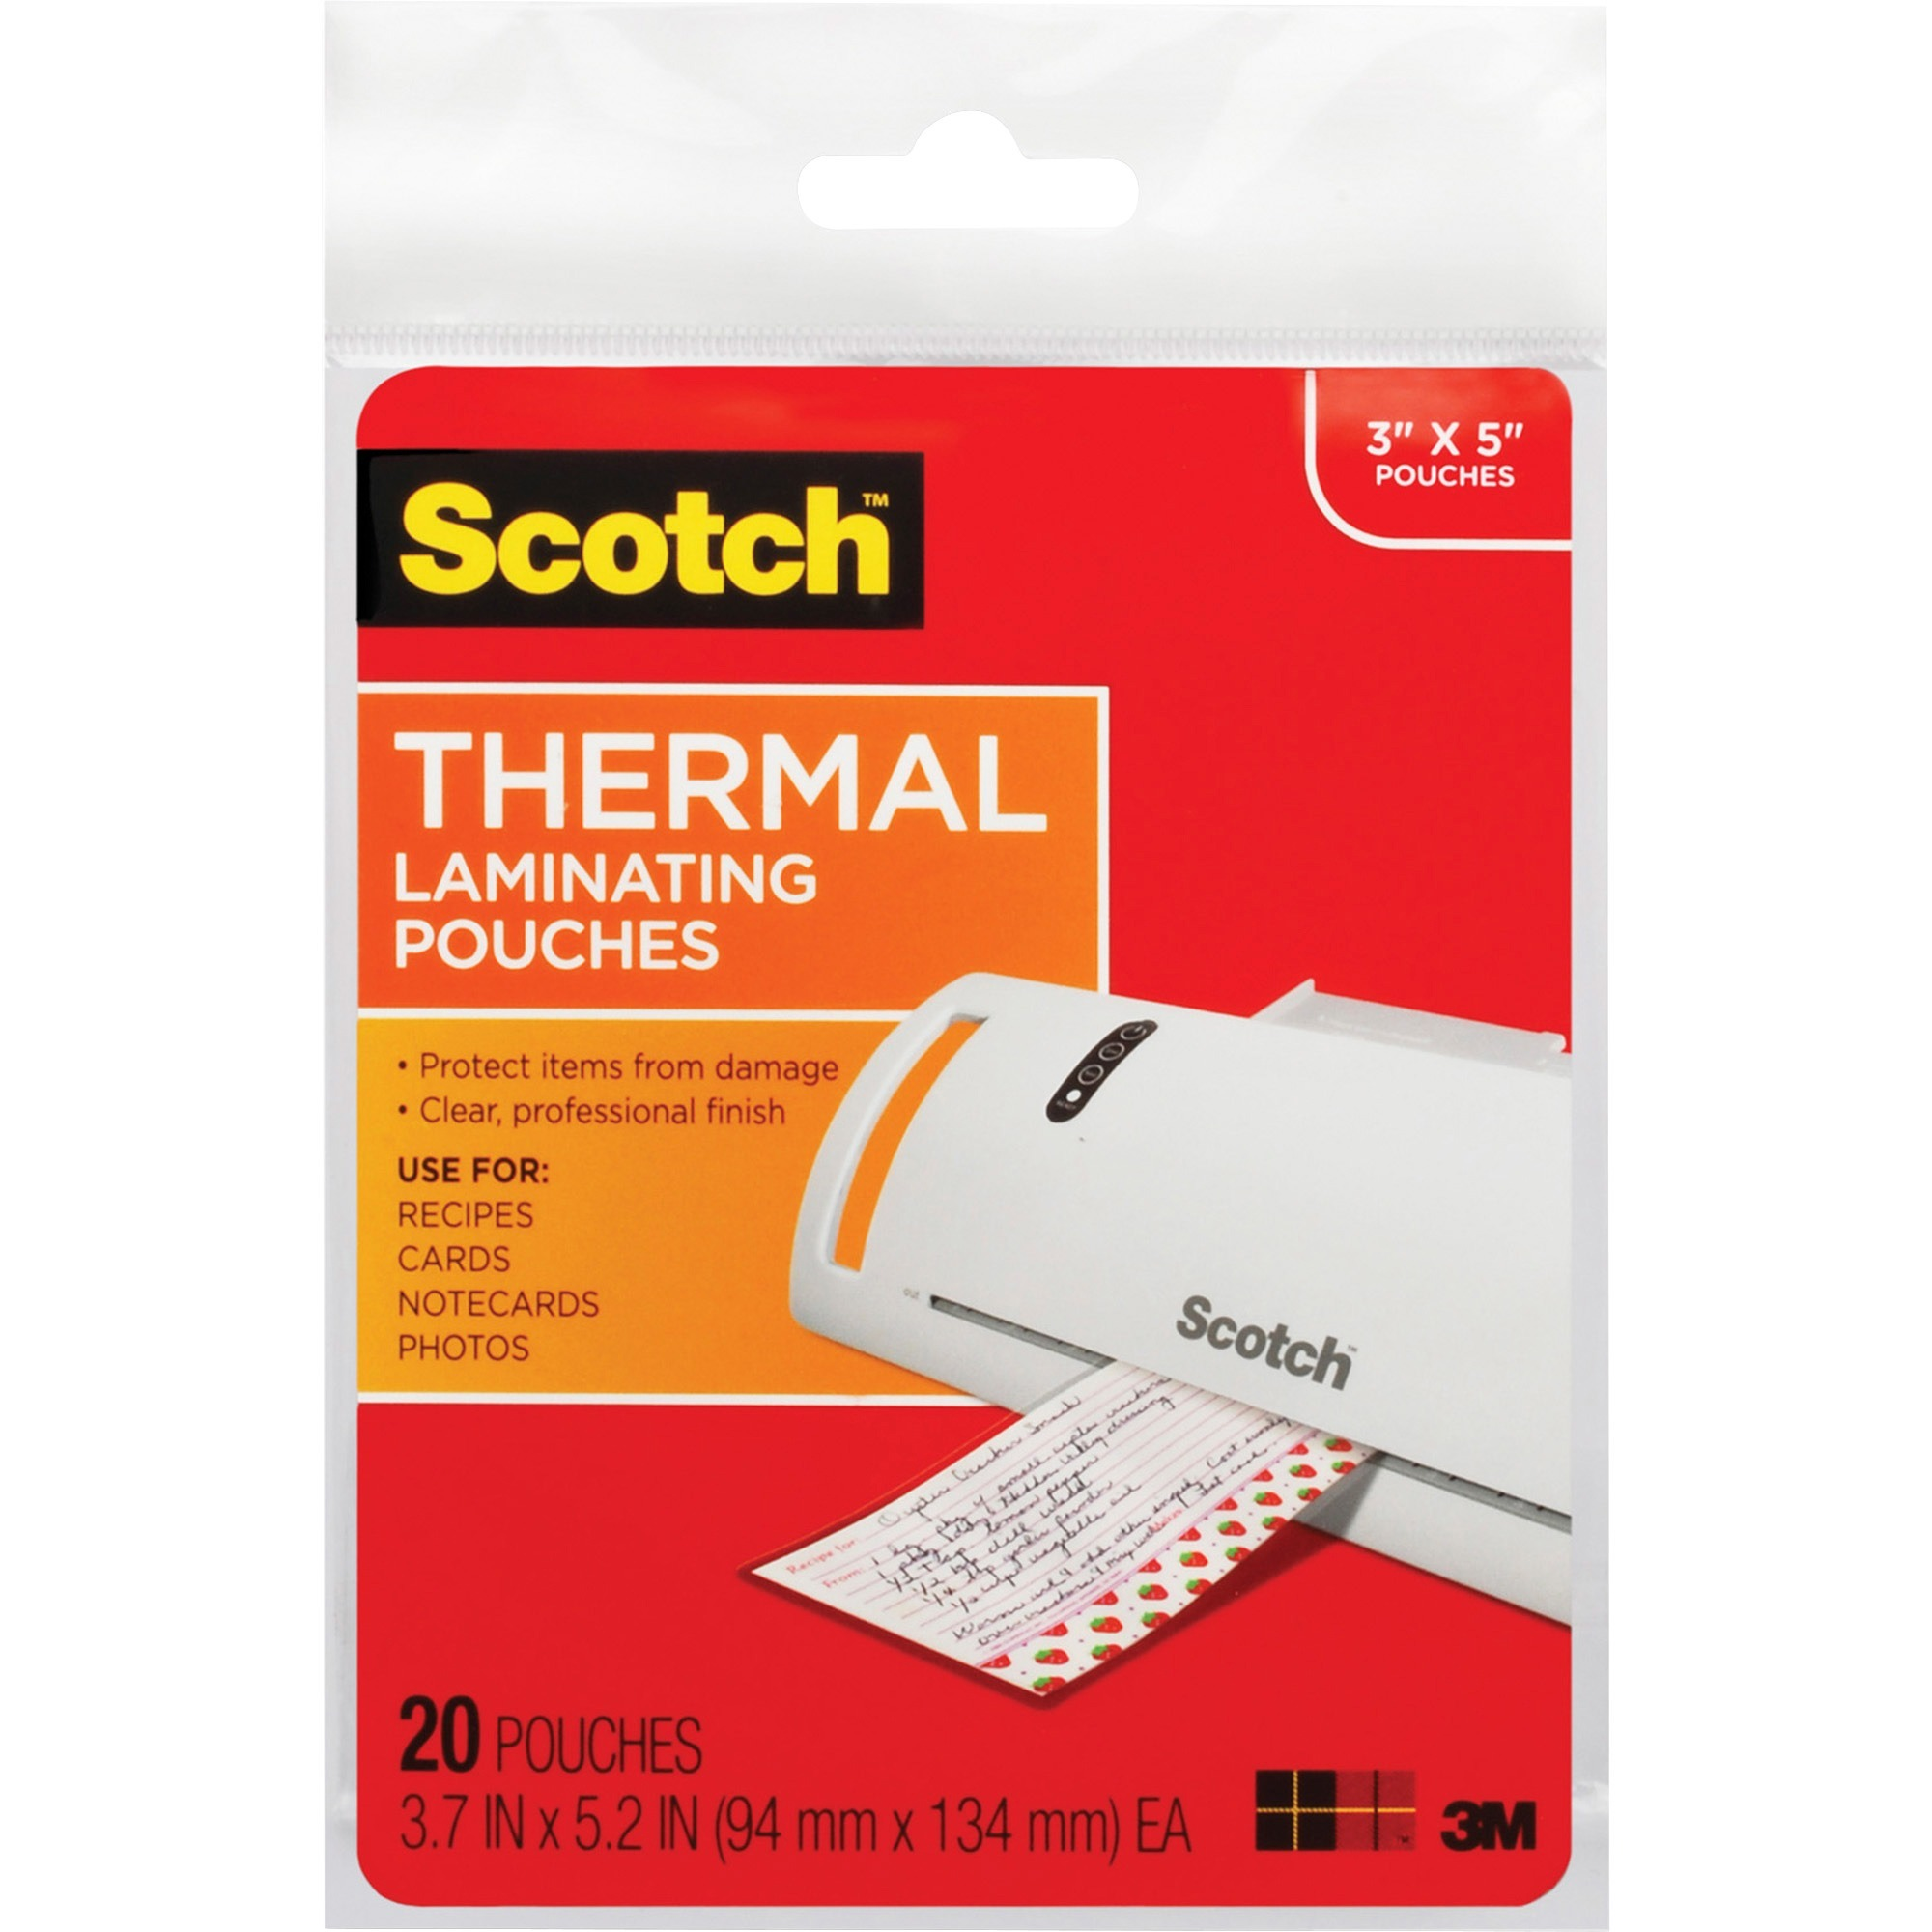 Scotch, MMMTP590220, Thermal Laminating Pouches, 20 / Pack, Clear